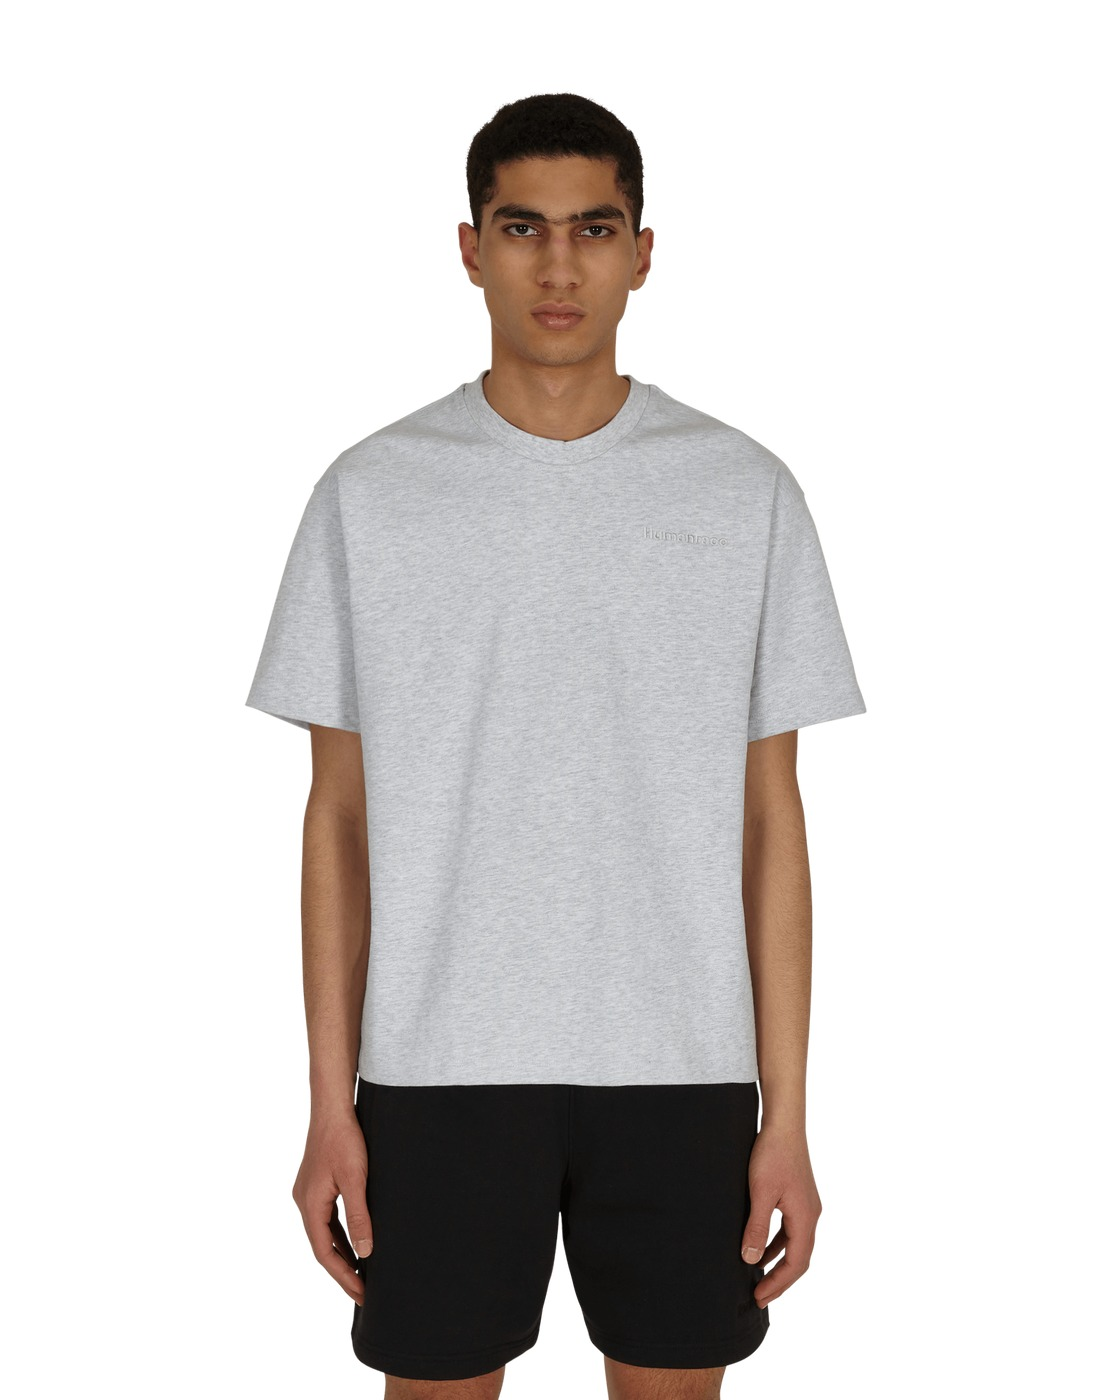 Photo: Adidas Originals Pharrell Williams Basics T Shirt Light Grey Heather